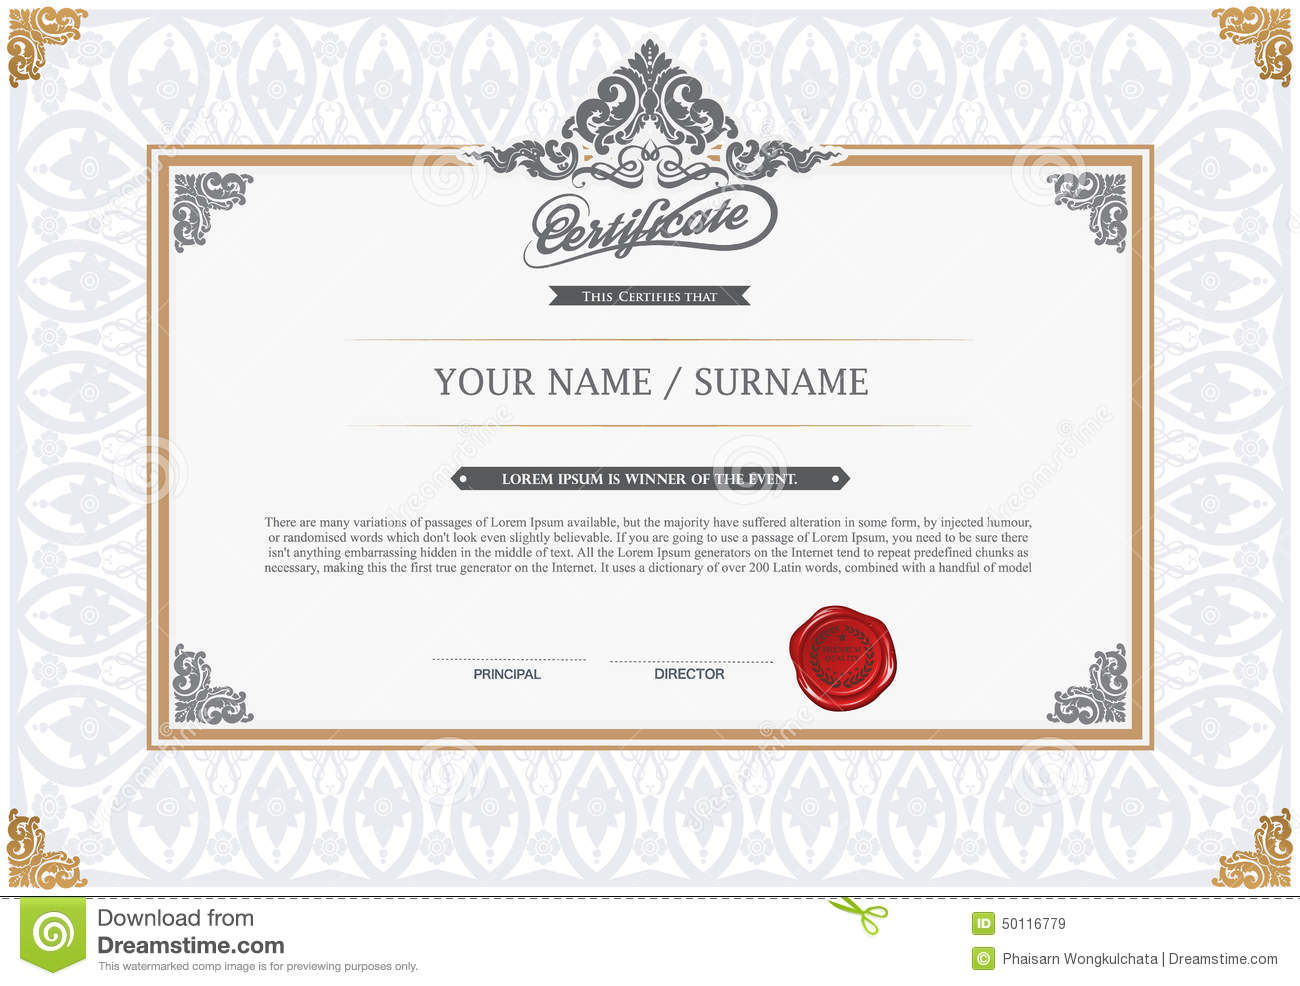 Certificate design template stock vector illustration of degree certificate design template royalty free vector 1betcityfo Choice Image